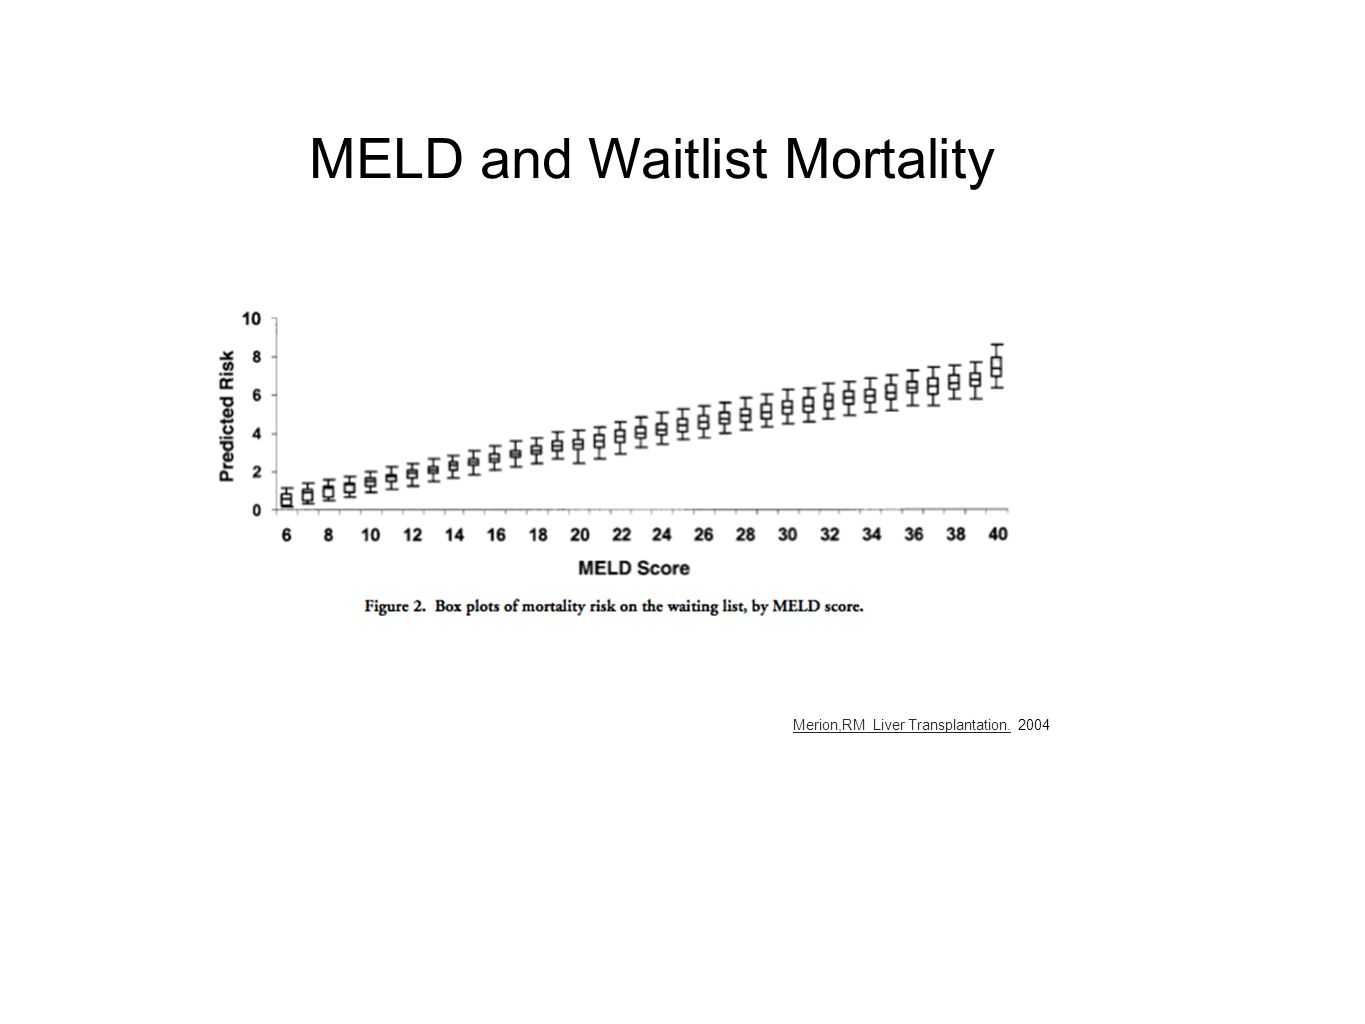 MELD and Waitlist Mortality Merion,RM Liver Transplantation. 2004